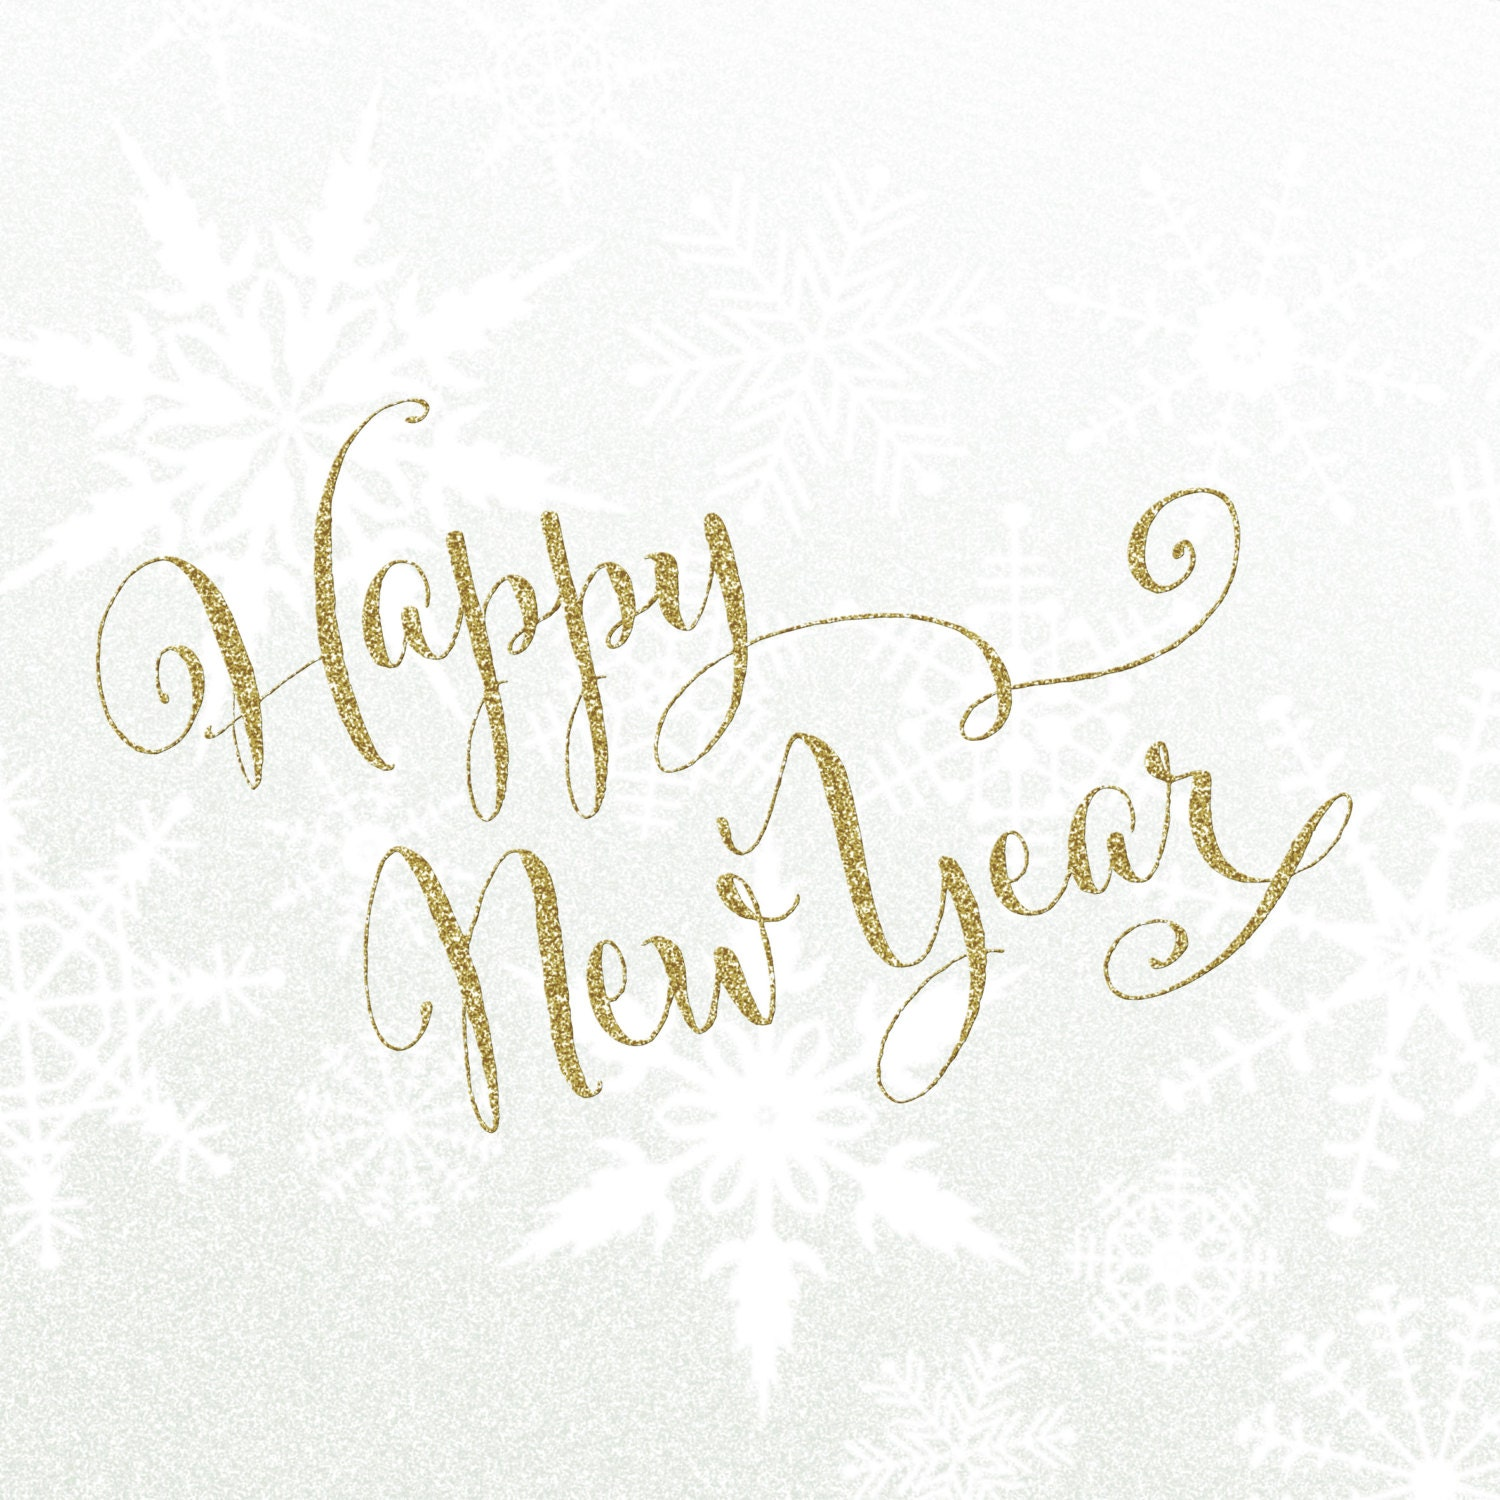 Happy New Year Gold Glitter Script - Digital Download Printable